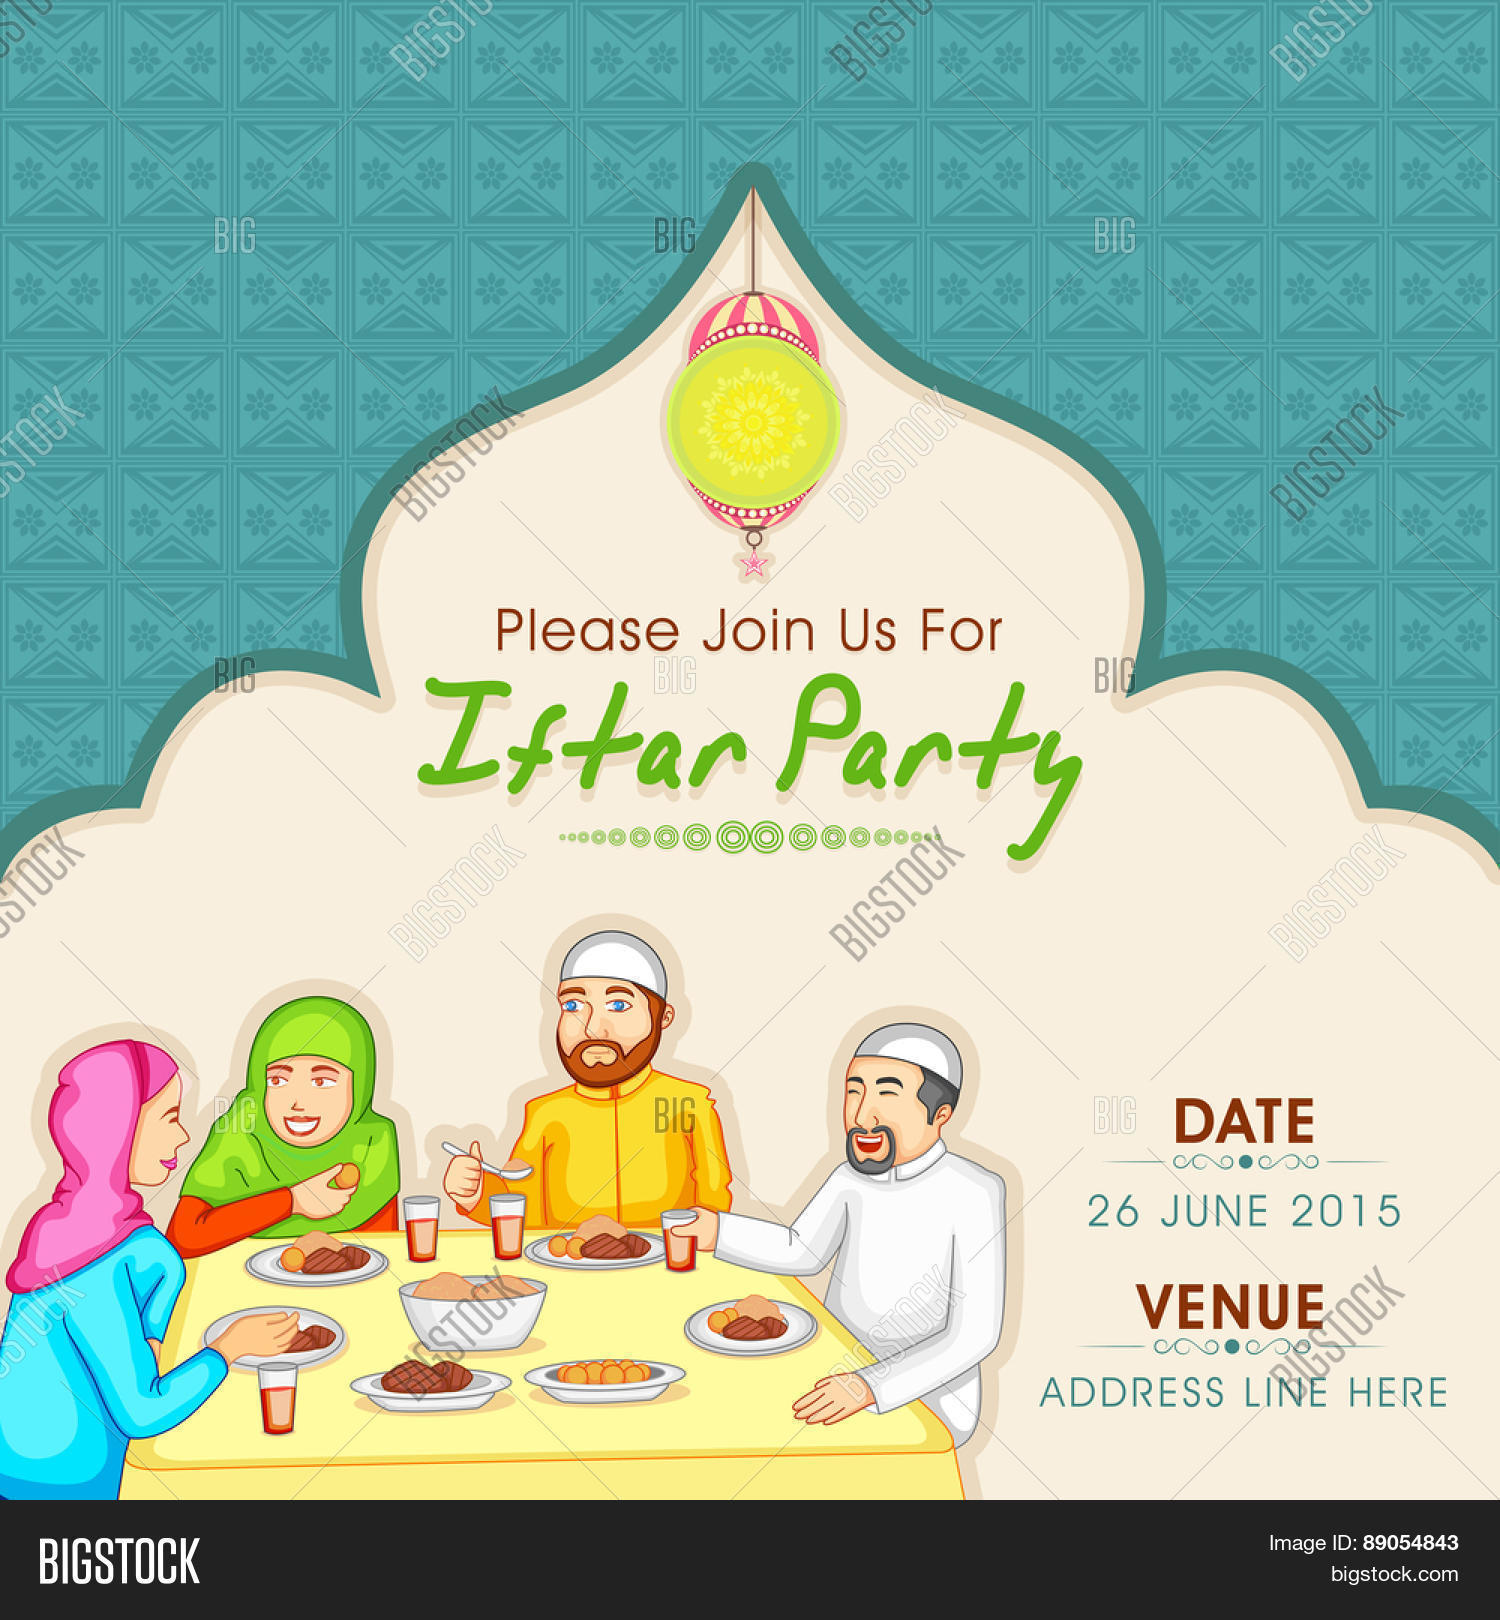 Holy month muslim community vector photo bigstock holy month of muslim community ramadan kareem celebration invitation card with illustration of a islamic stopboris Images